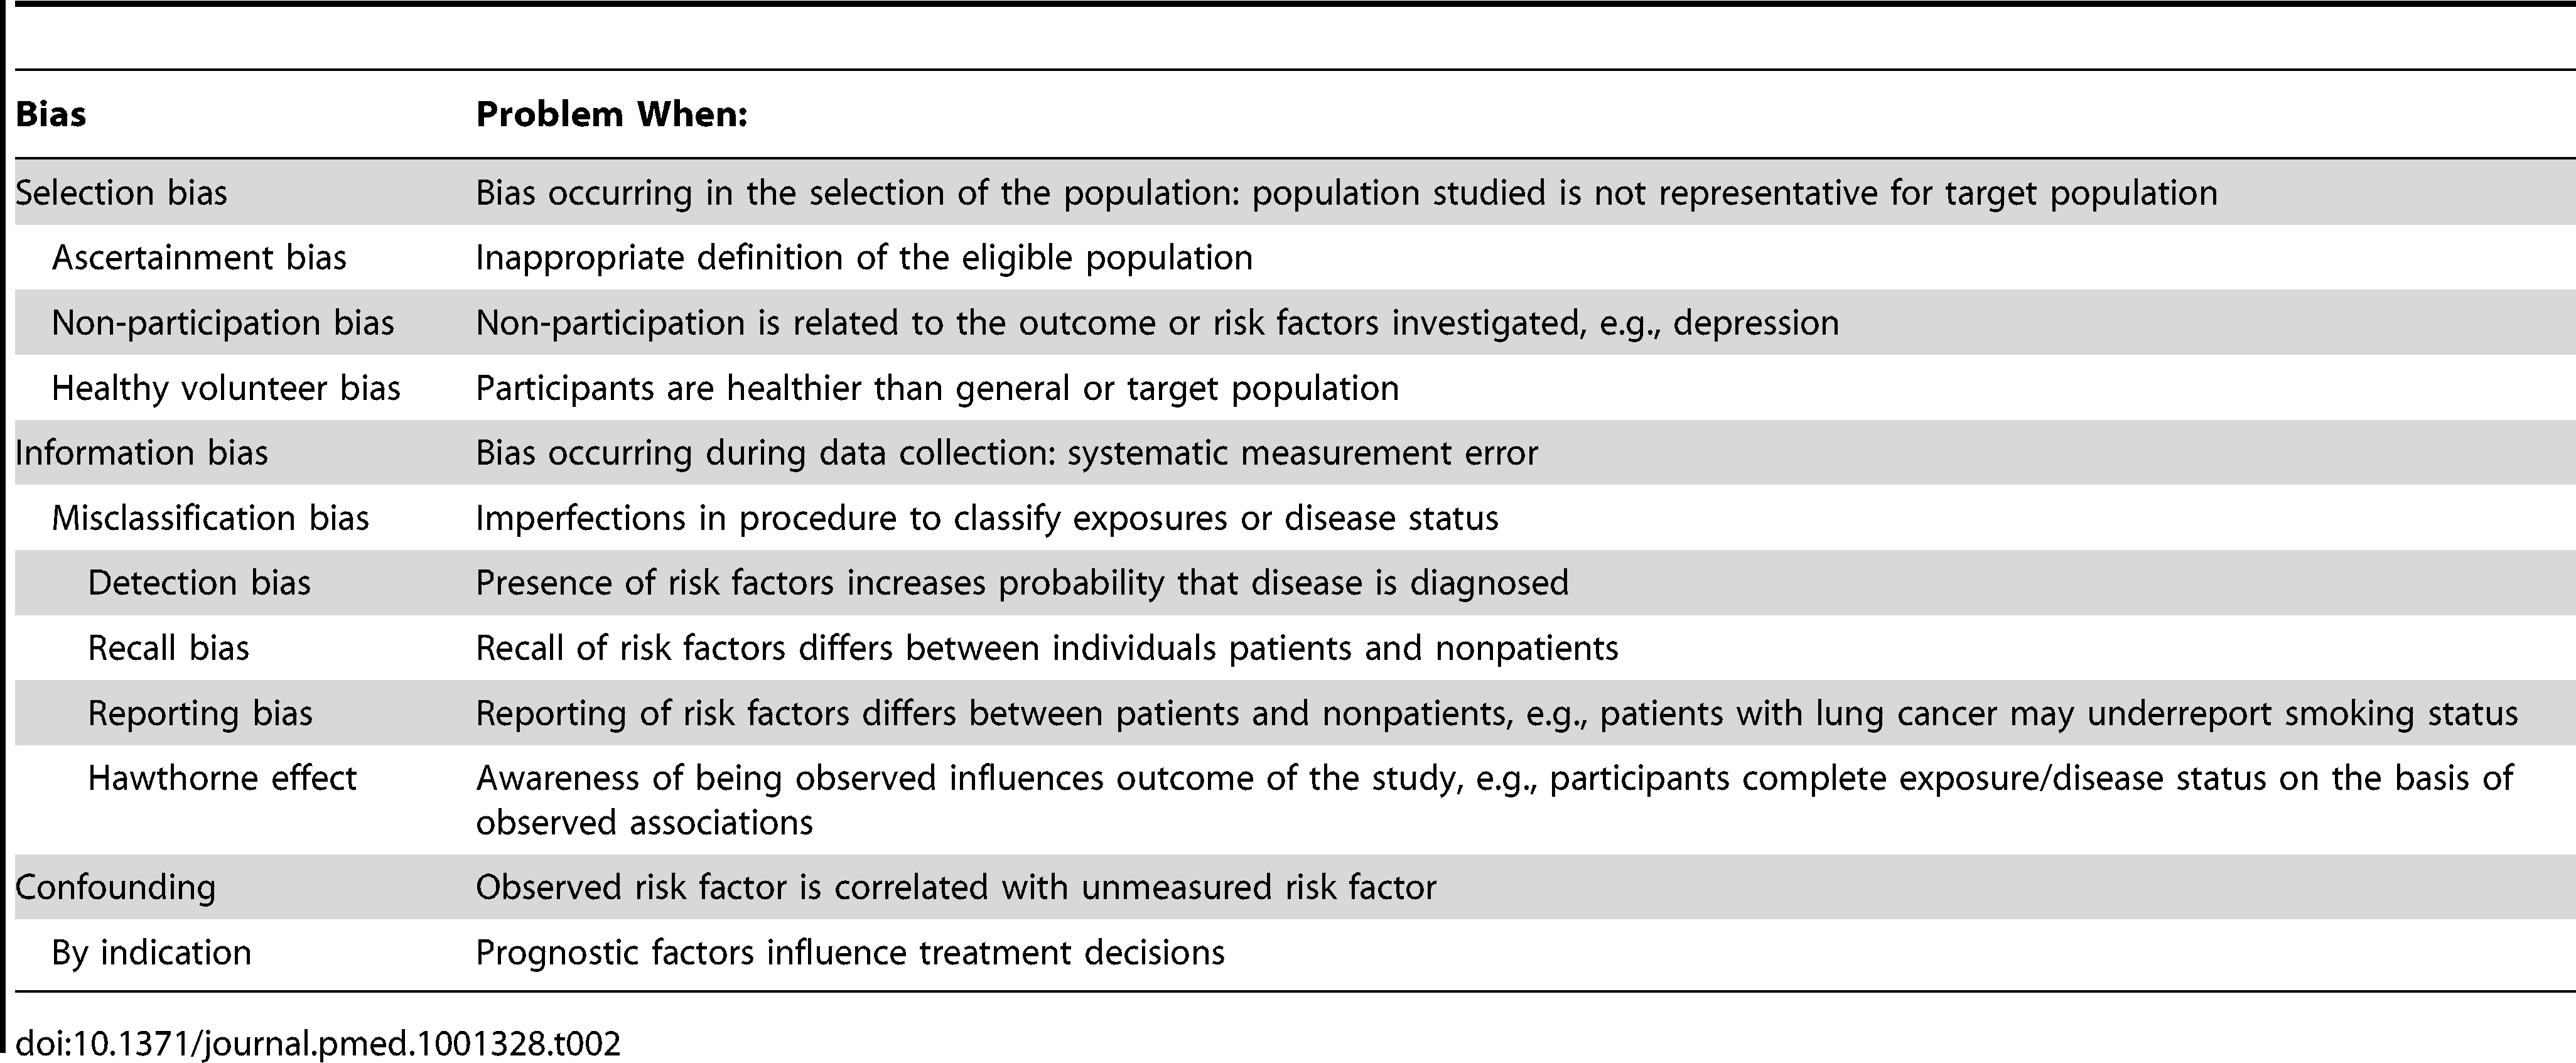 """Biases in observational studies and their potential effect when using self-report data from self-selected individuals <em class=""""ref"""">[12]</em>."""